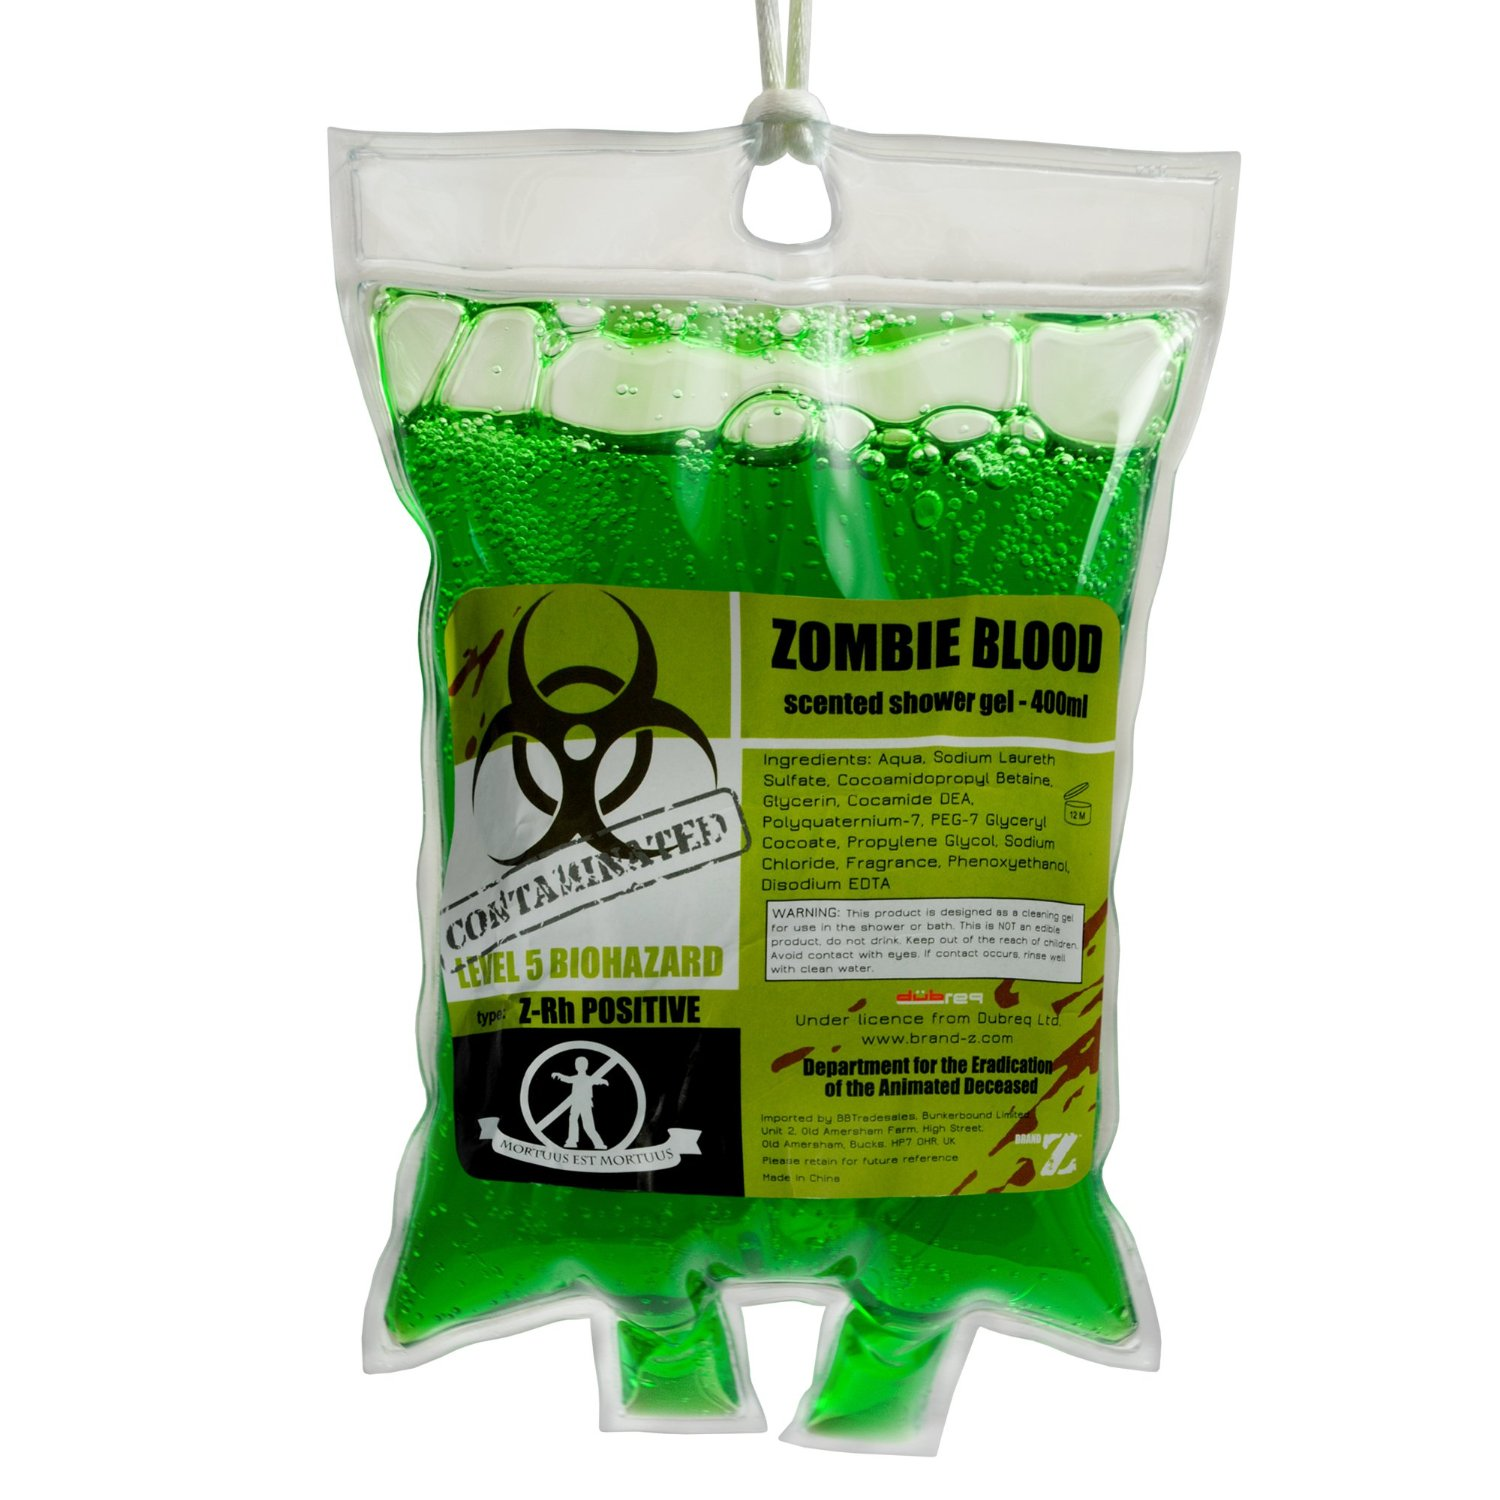 Repel zombies with zombie blood shower gel geek decor for Zombie bathroom decor